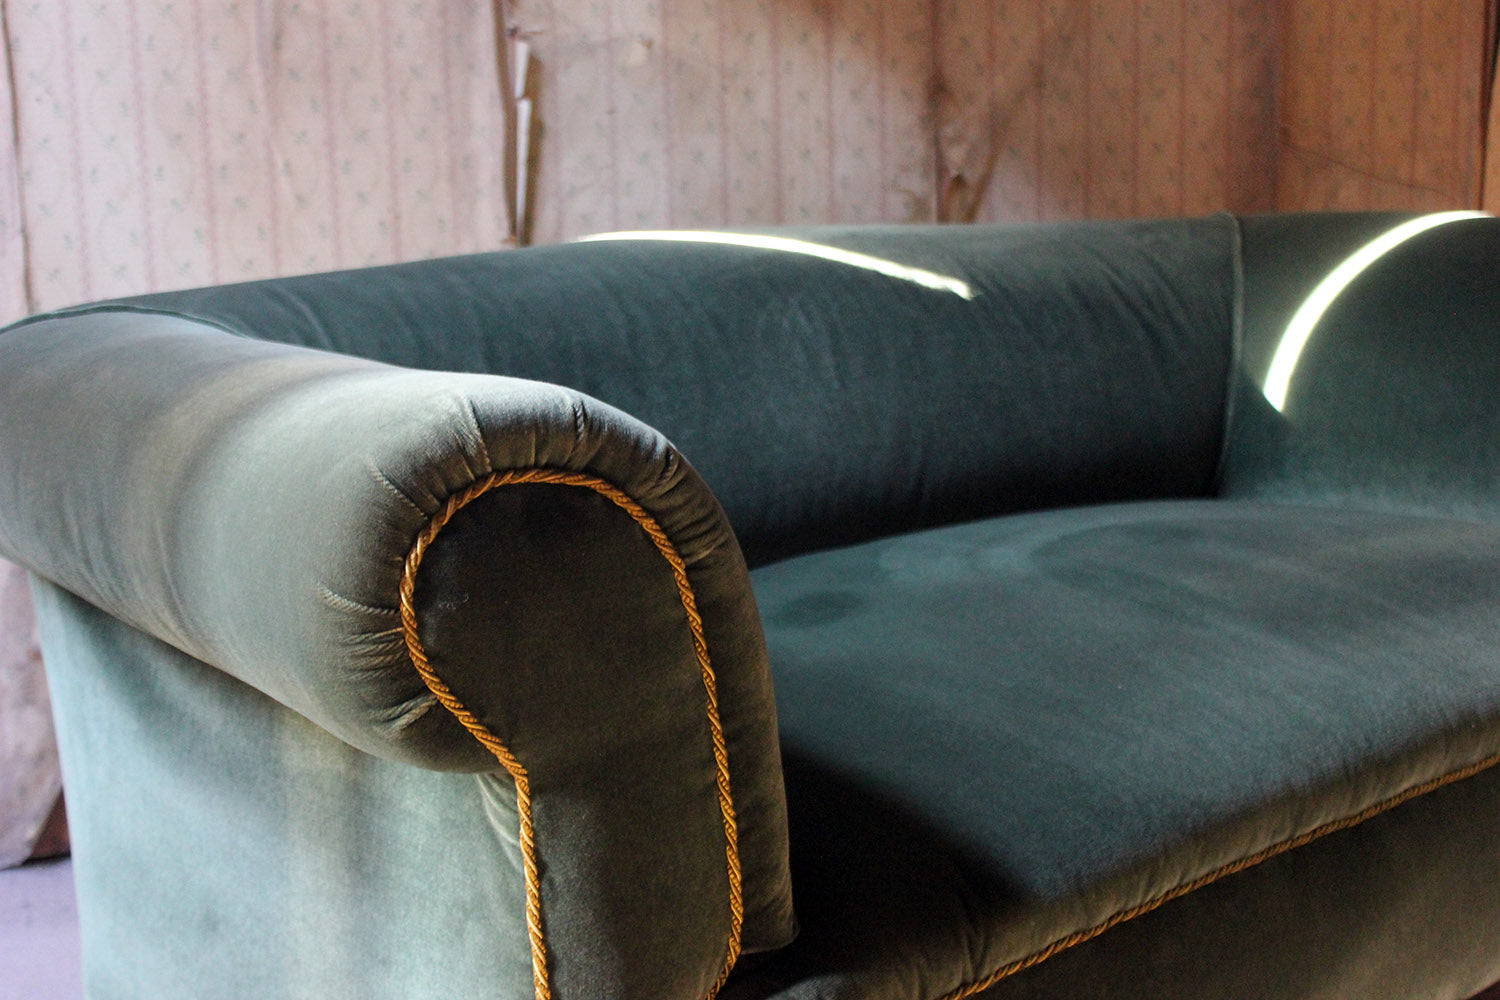 A Late Victorian Green Velvet Upholstered Chesterfield Sofa c.1900